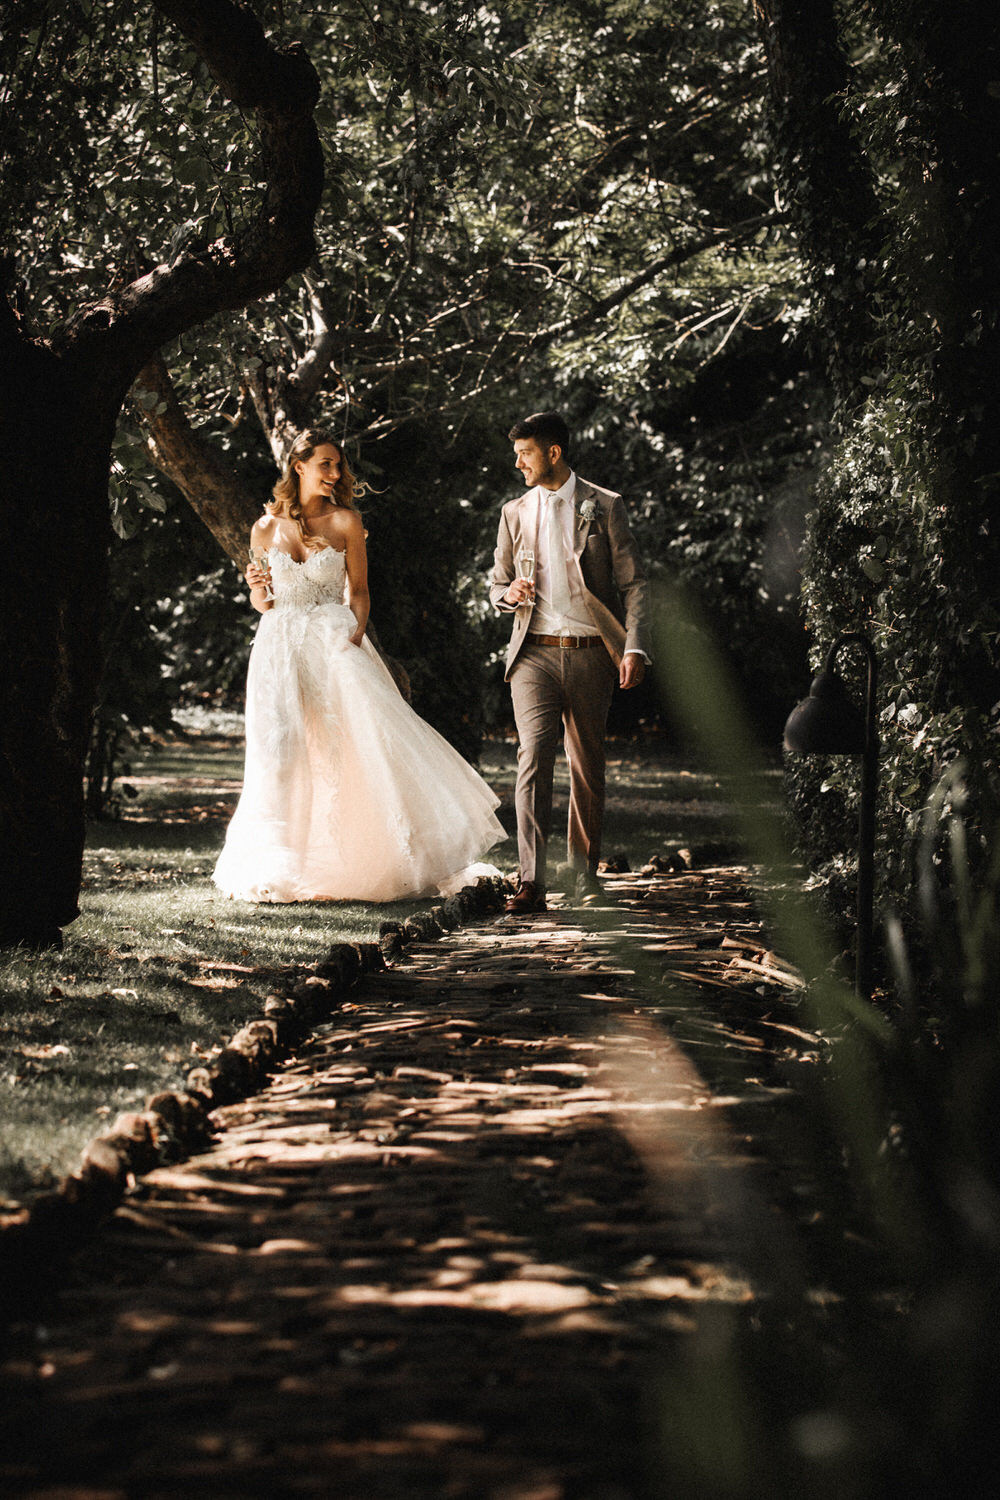 The bride and groom take a country walk together while drinking champagne